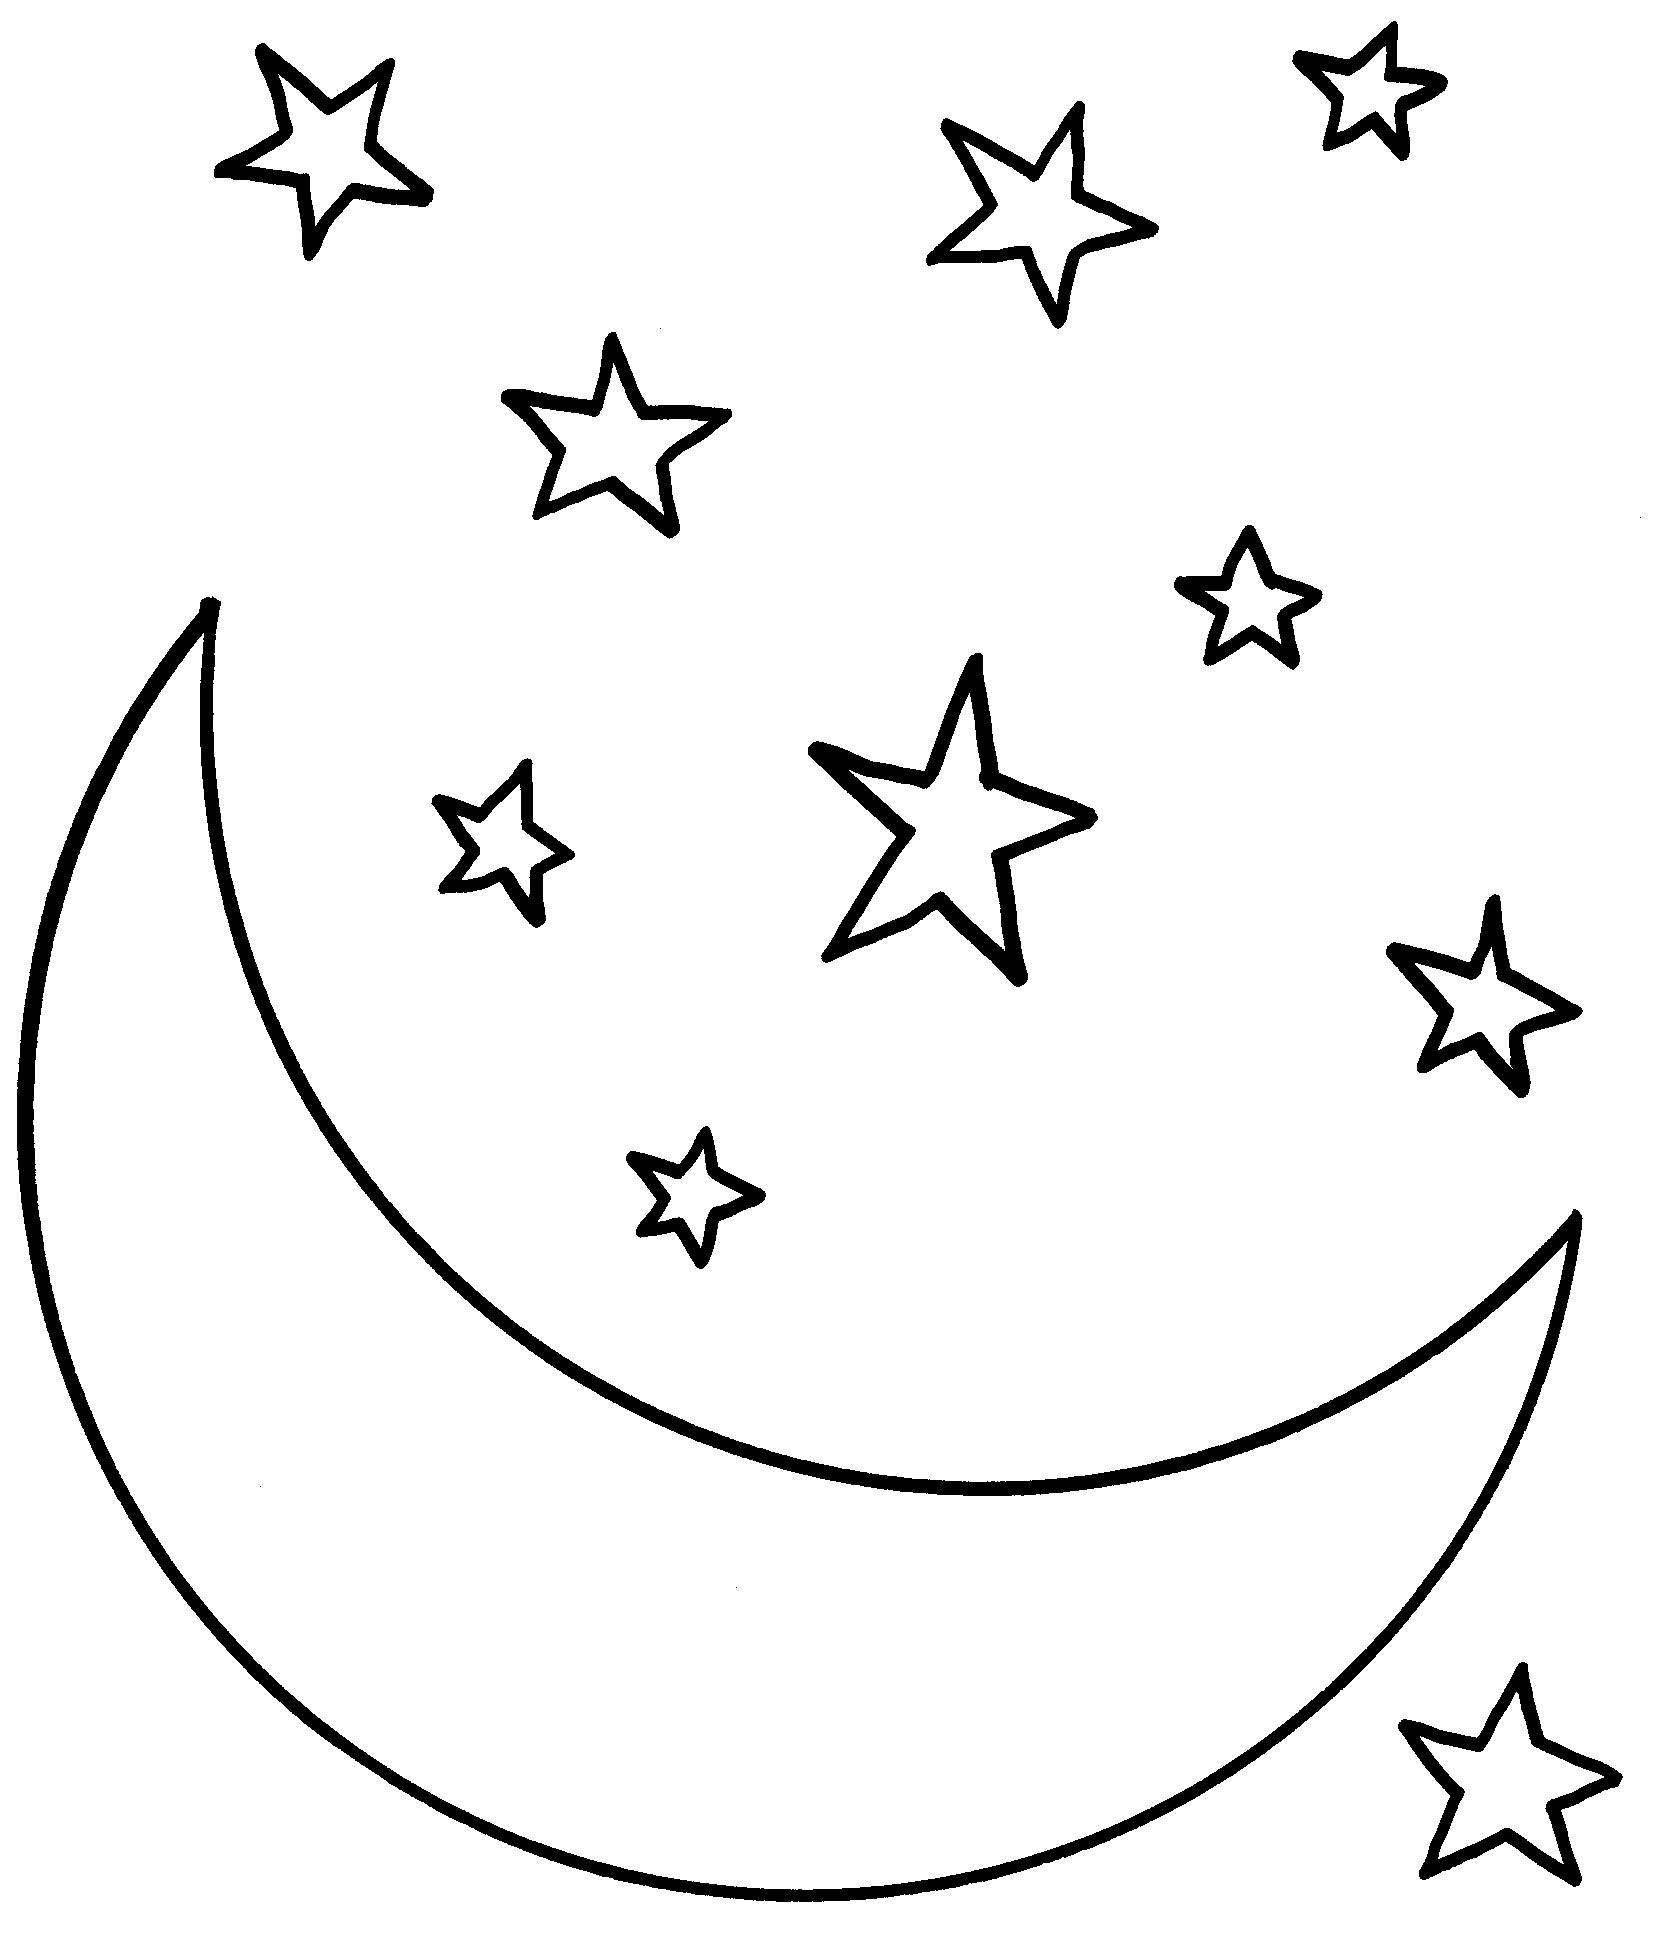 Night Sky Drawing at GetDrawings.com | Free for personal use Night ...